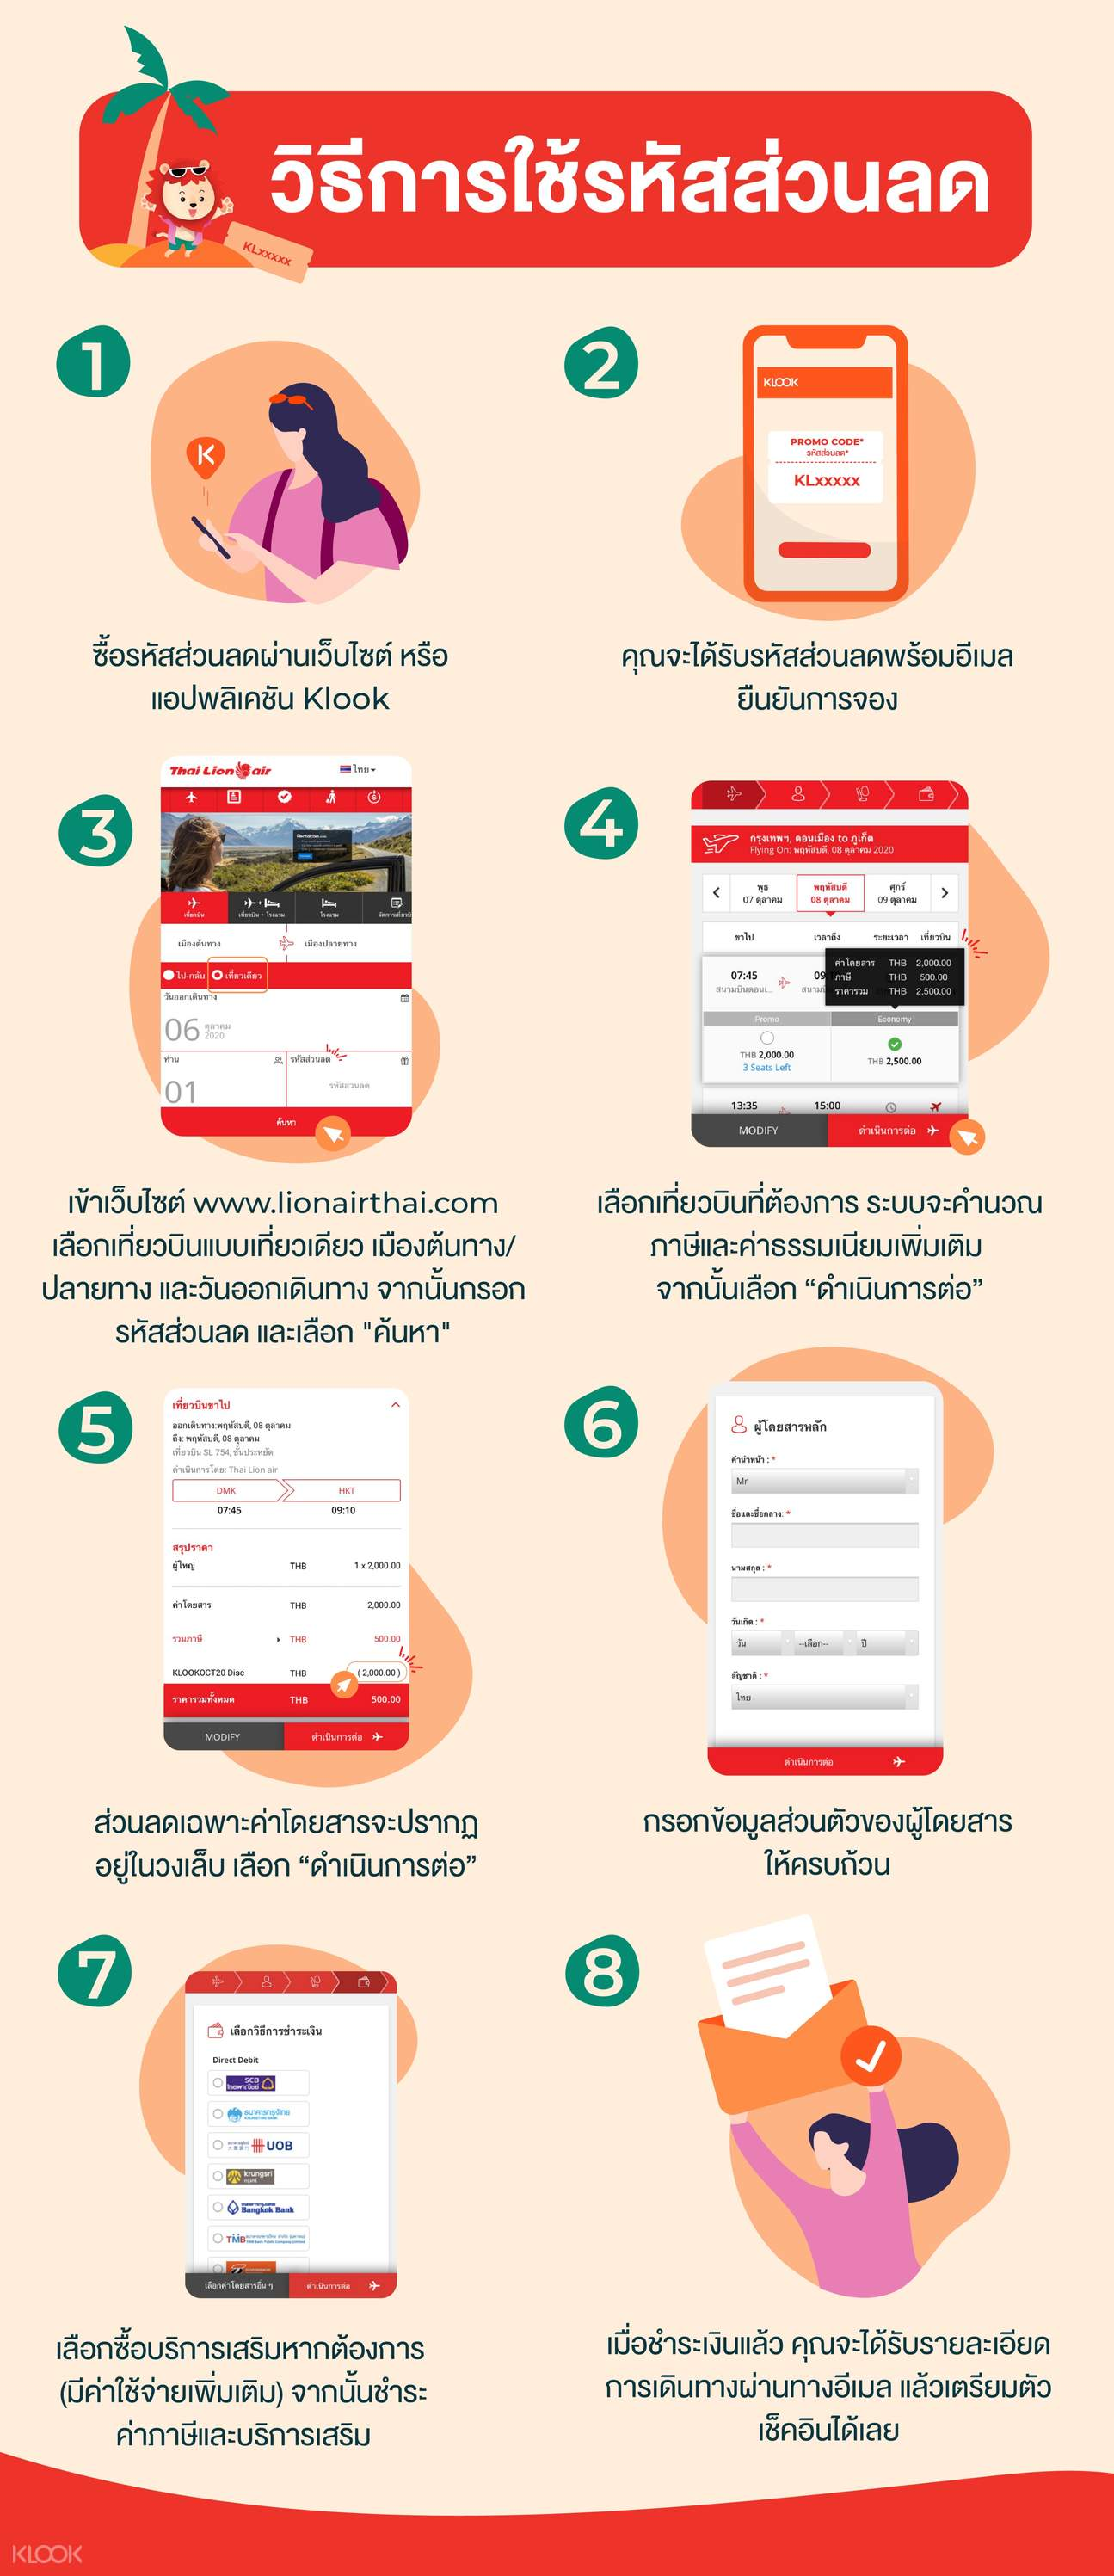 How to use Thai Lion Air Promo Code for Domestic Flights